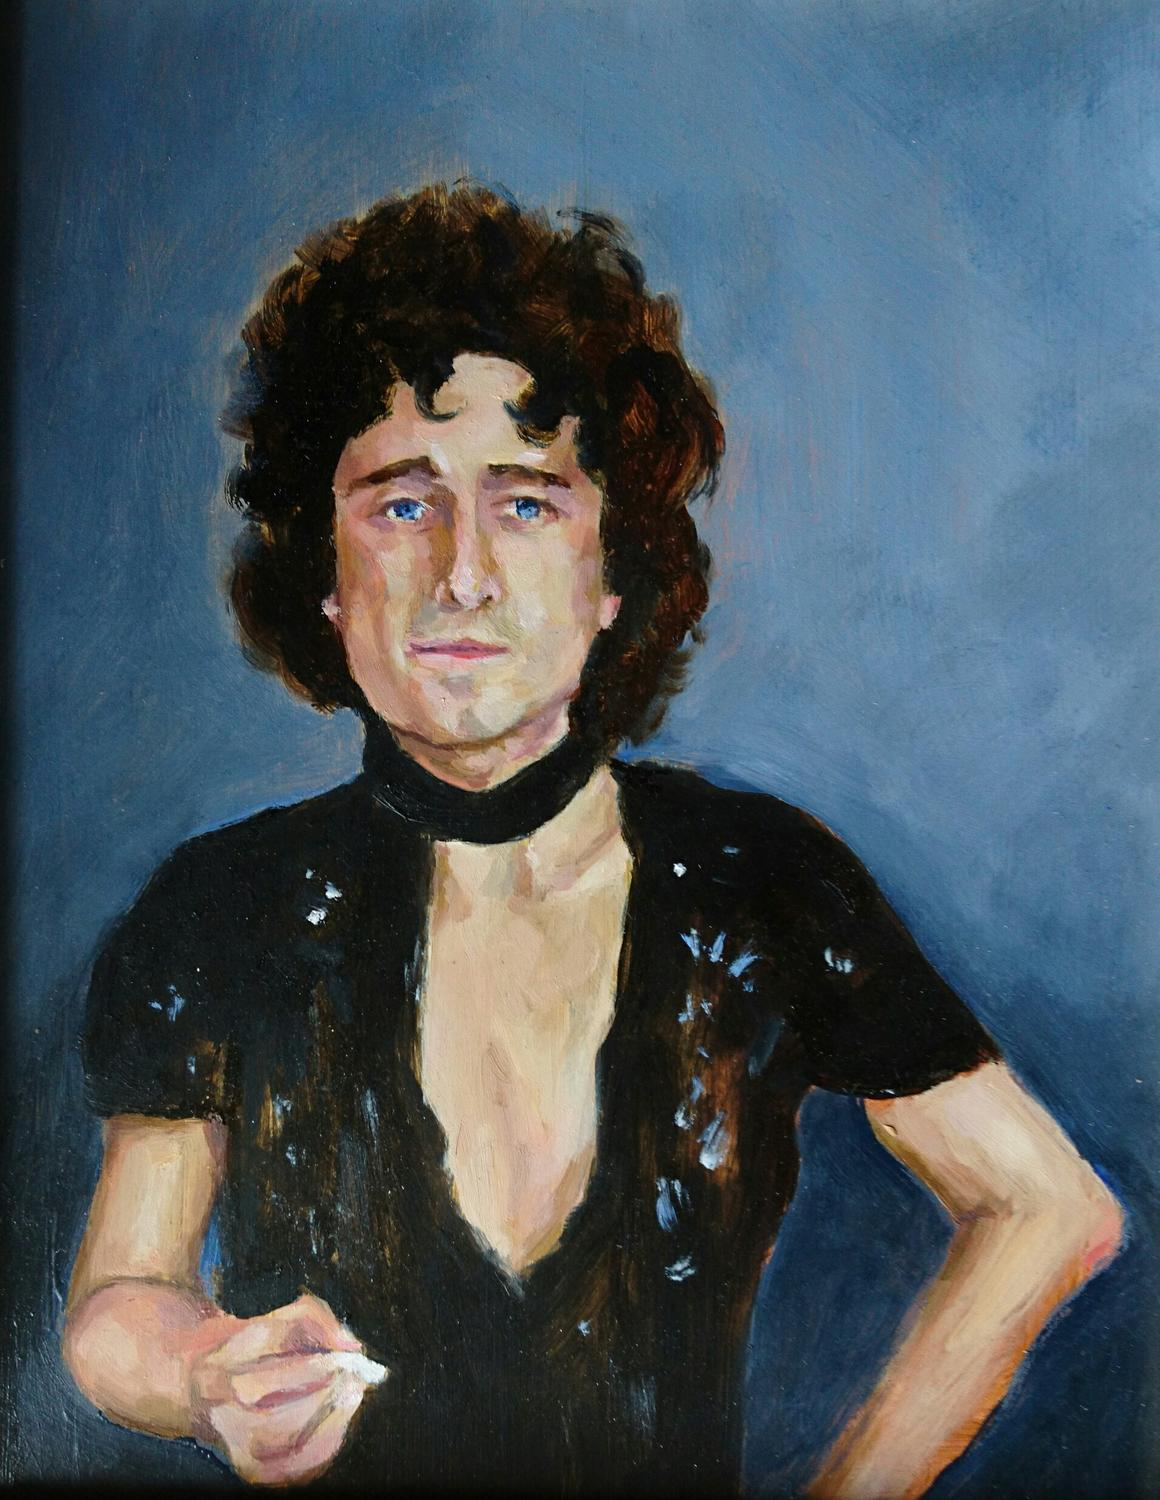 Glam Rocker, Oil on board, 2017